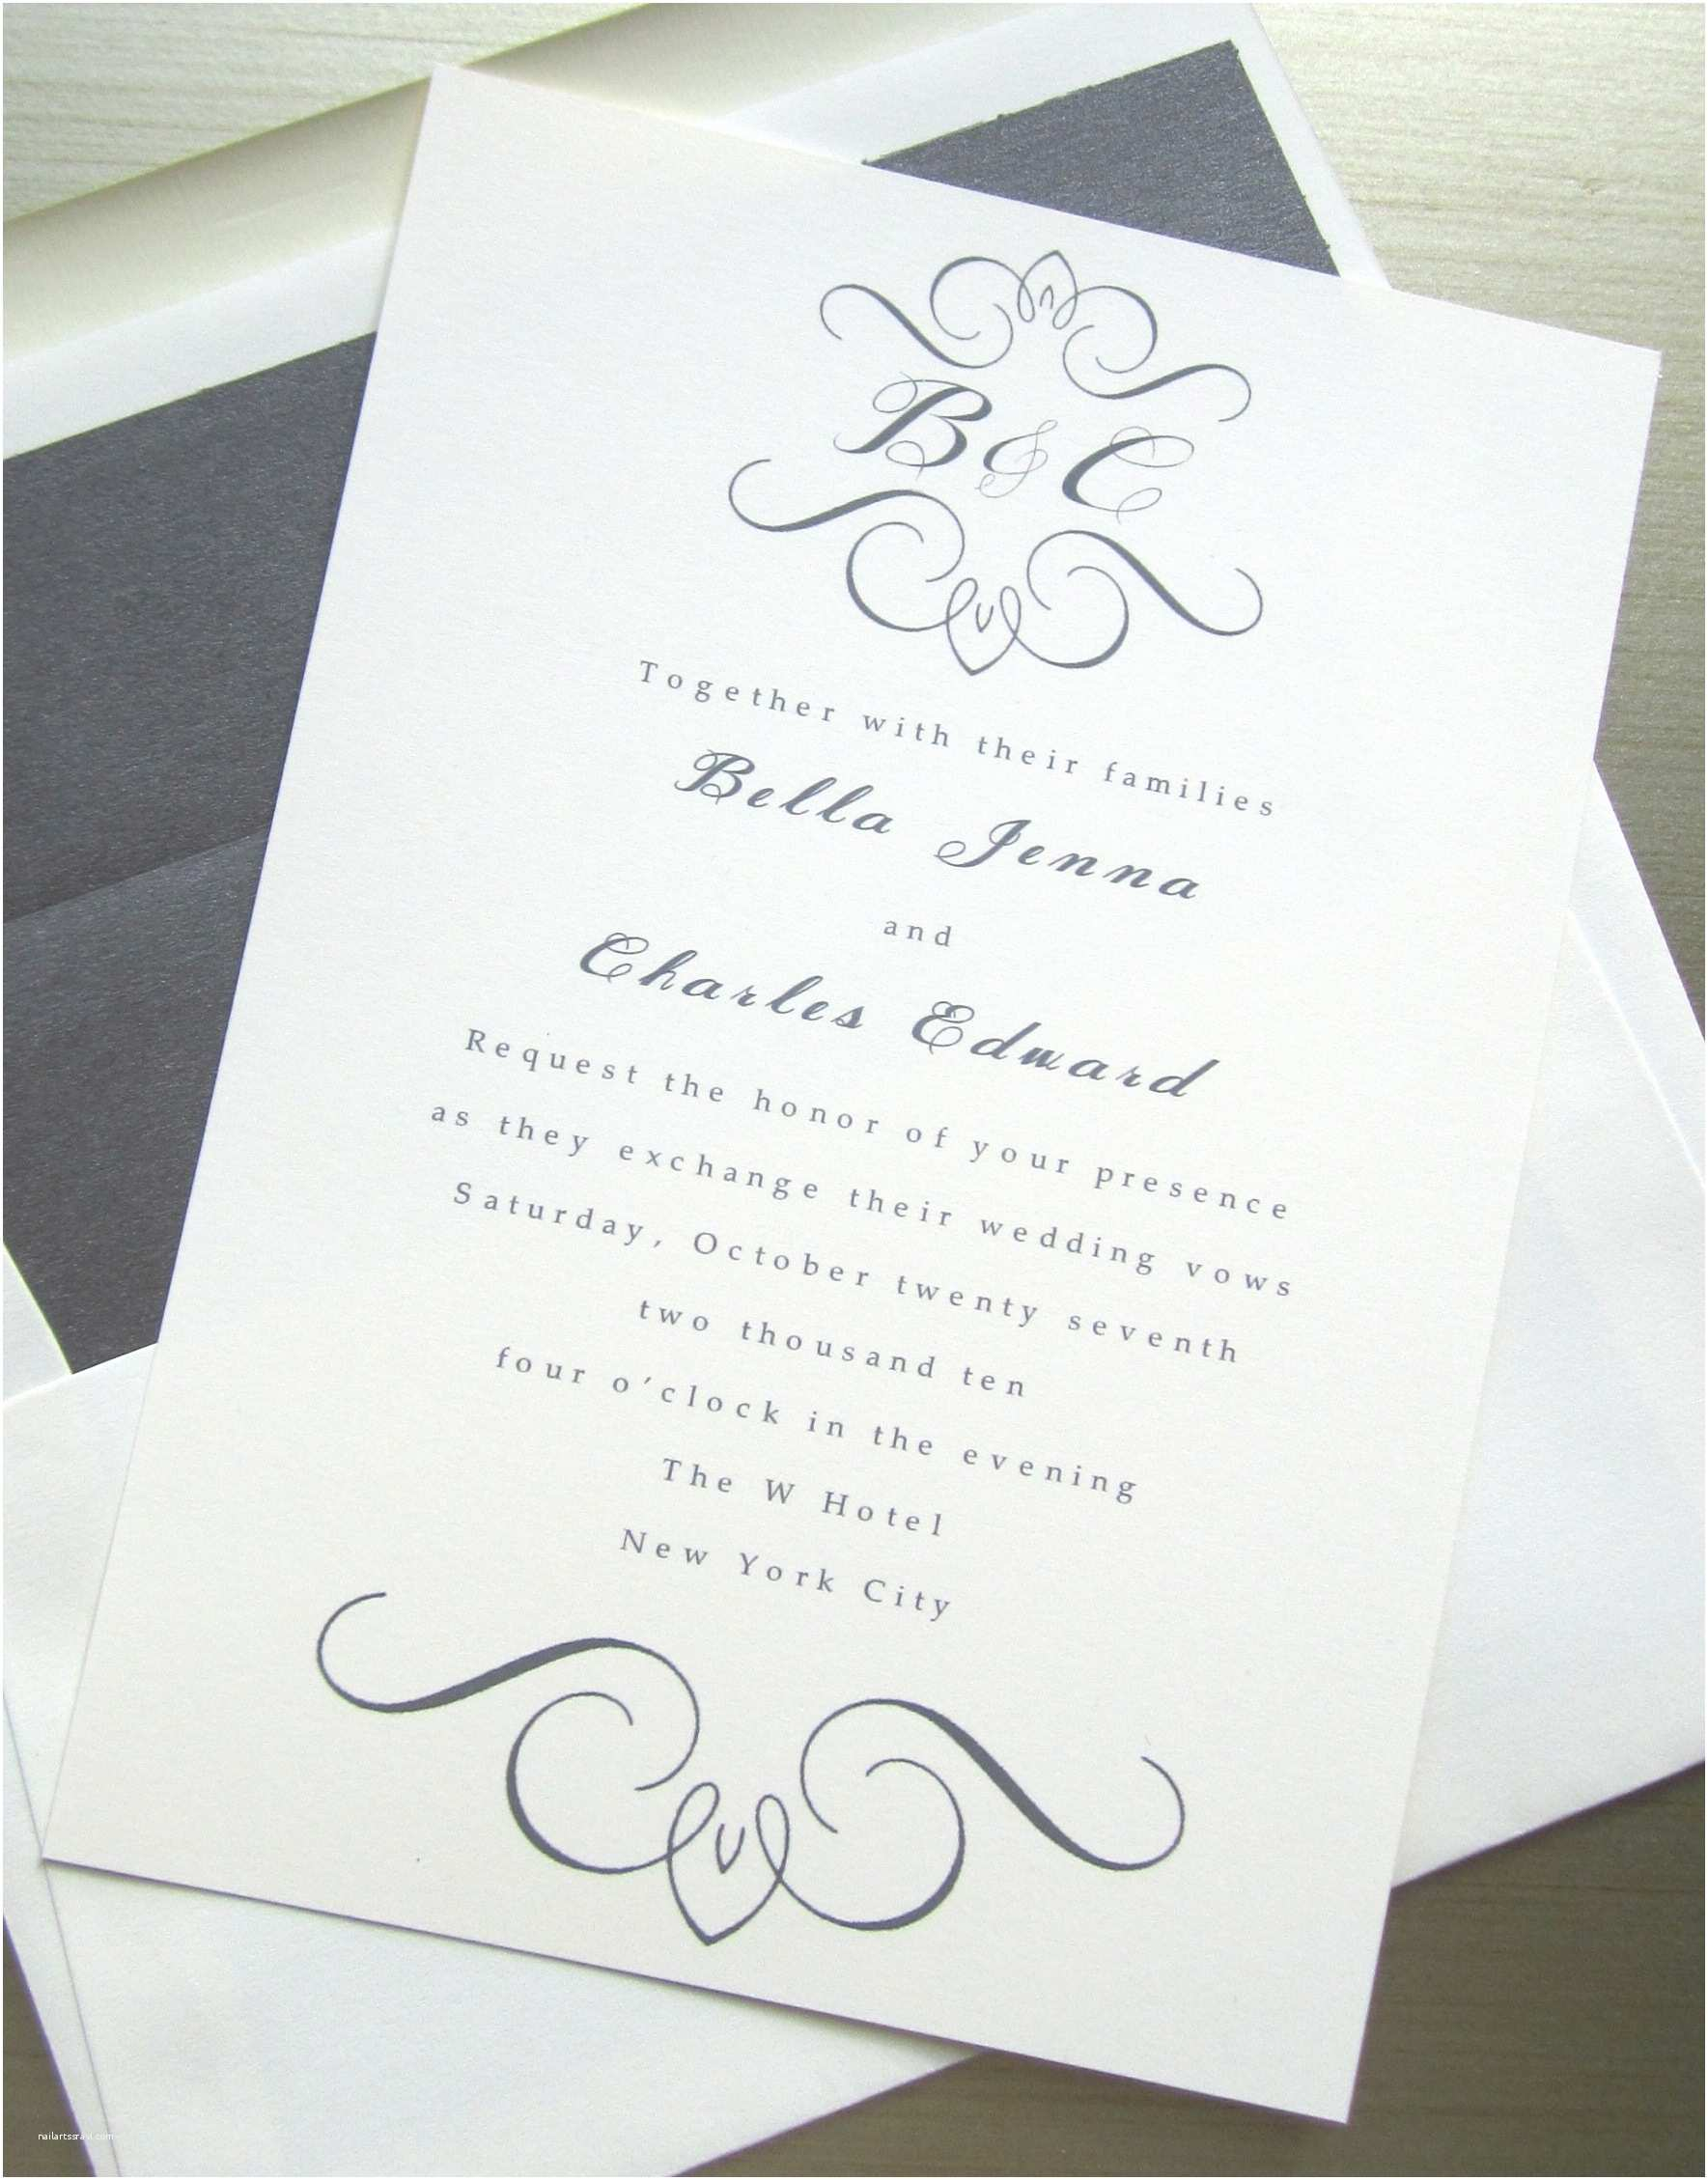 Elegant Wedding Invitation Wording Elegant Wedding Invites Elegant Wedding Invites for the